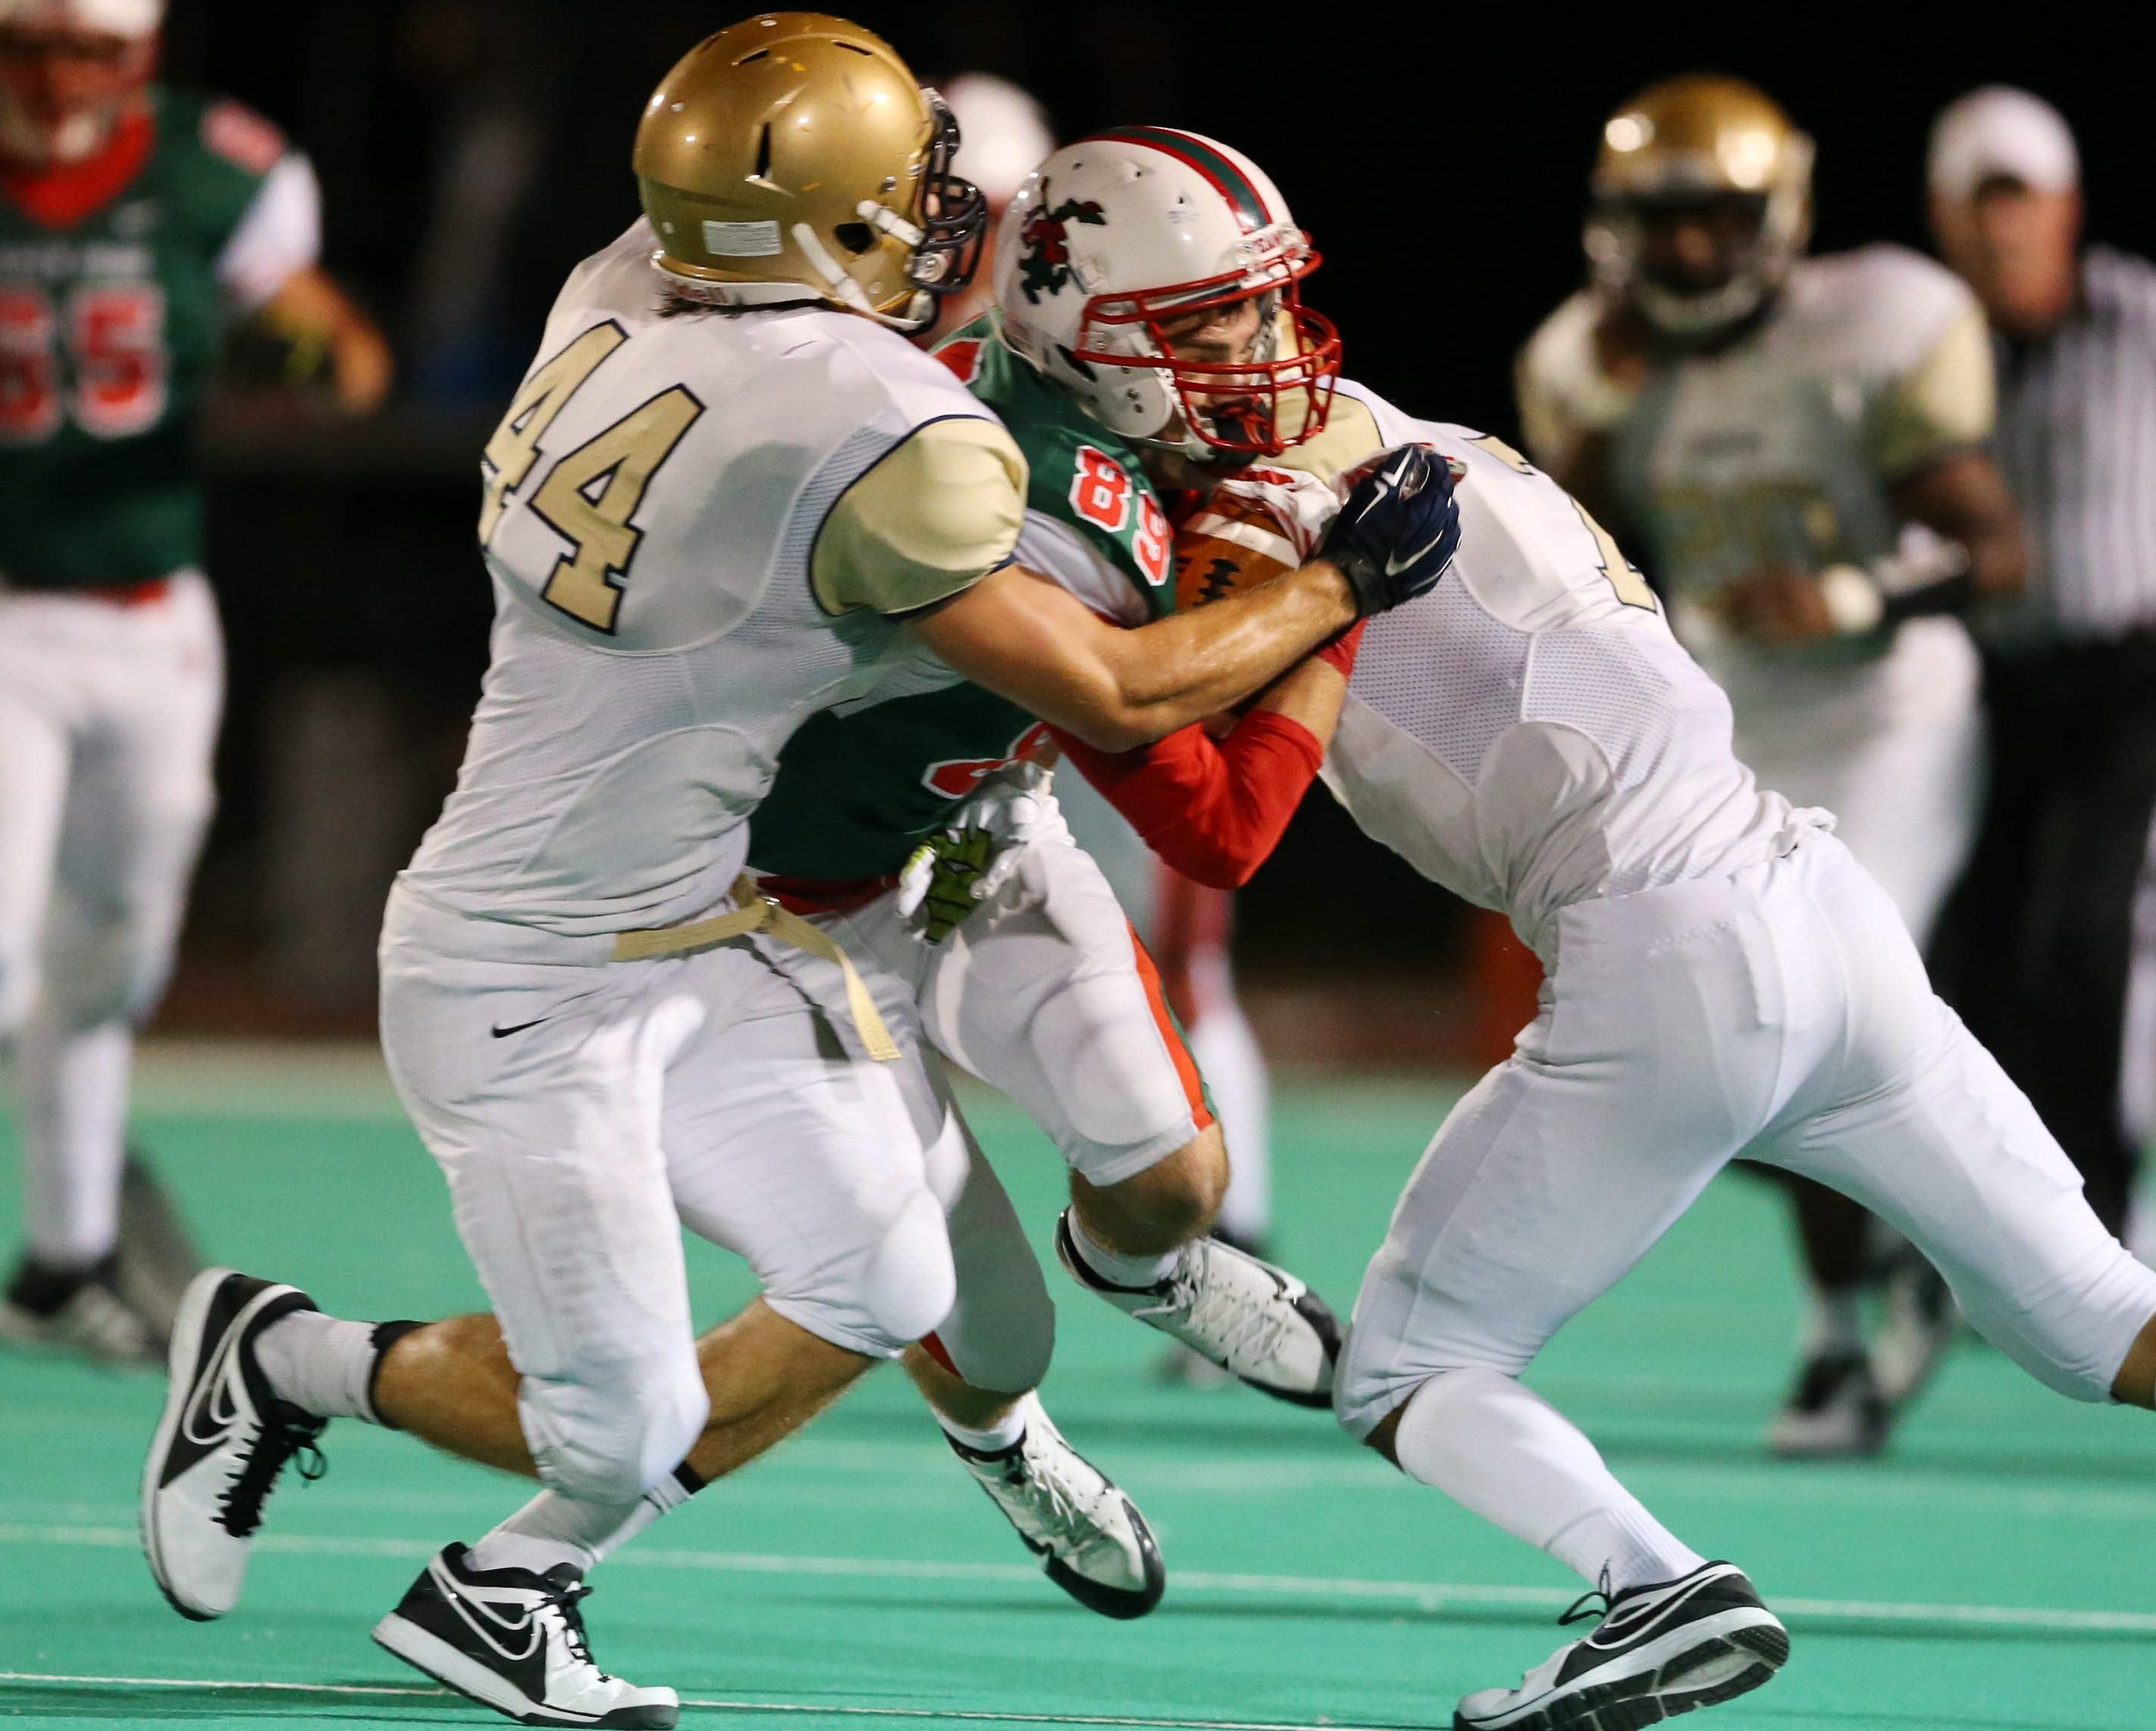 Brad Zaffram of Canisius makes one of his 91 tackles during the 2014 season.